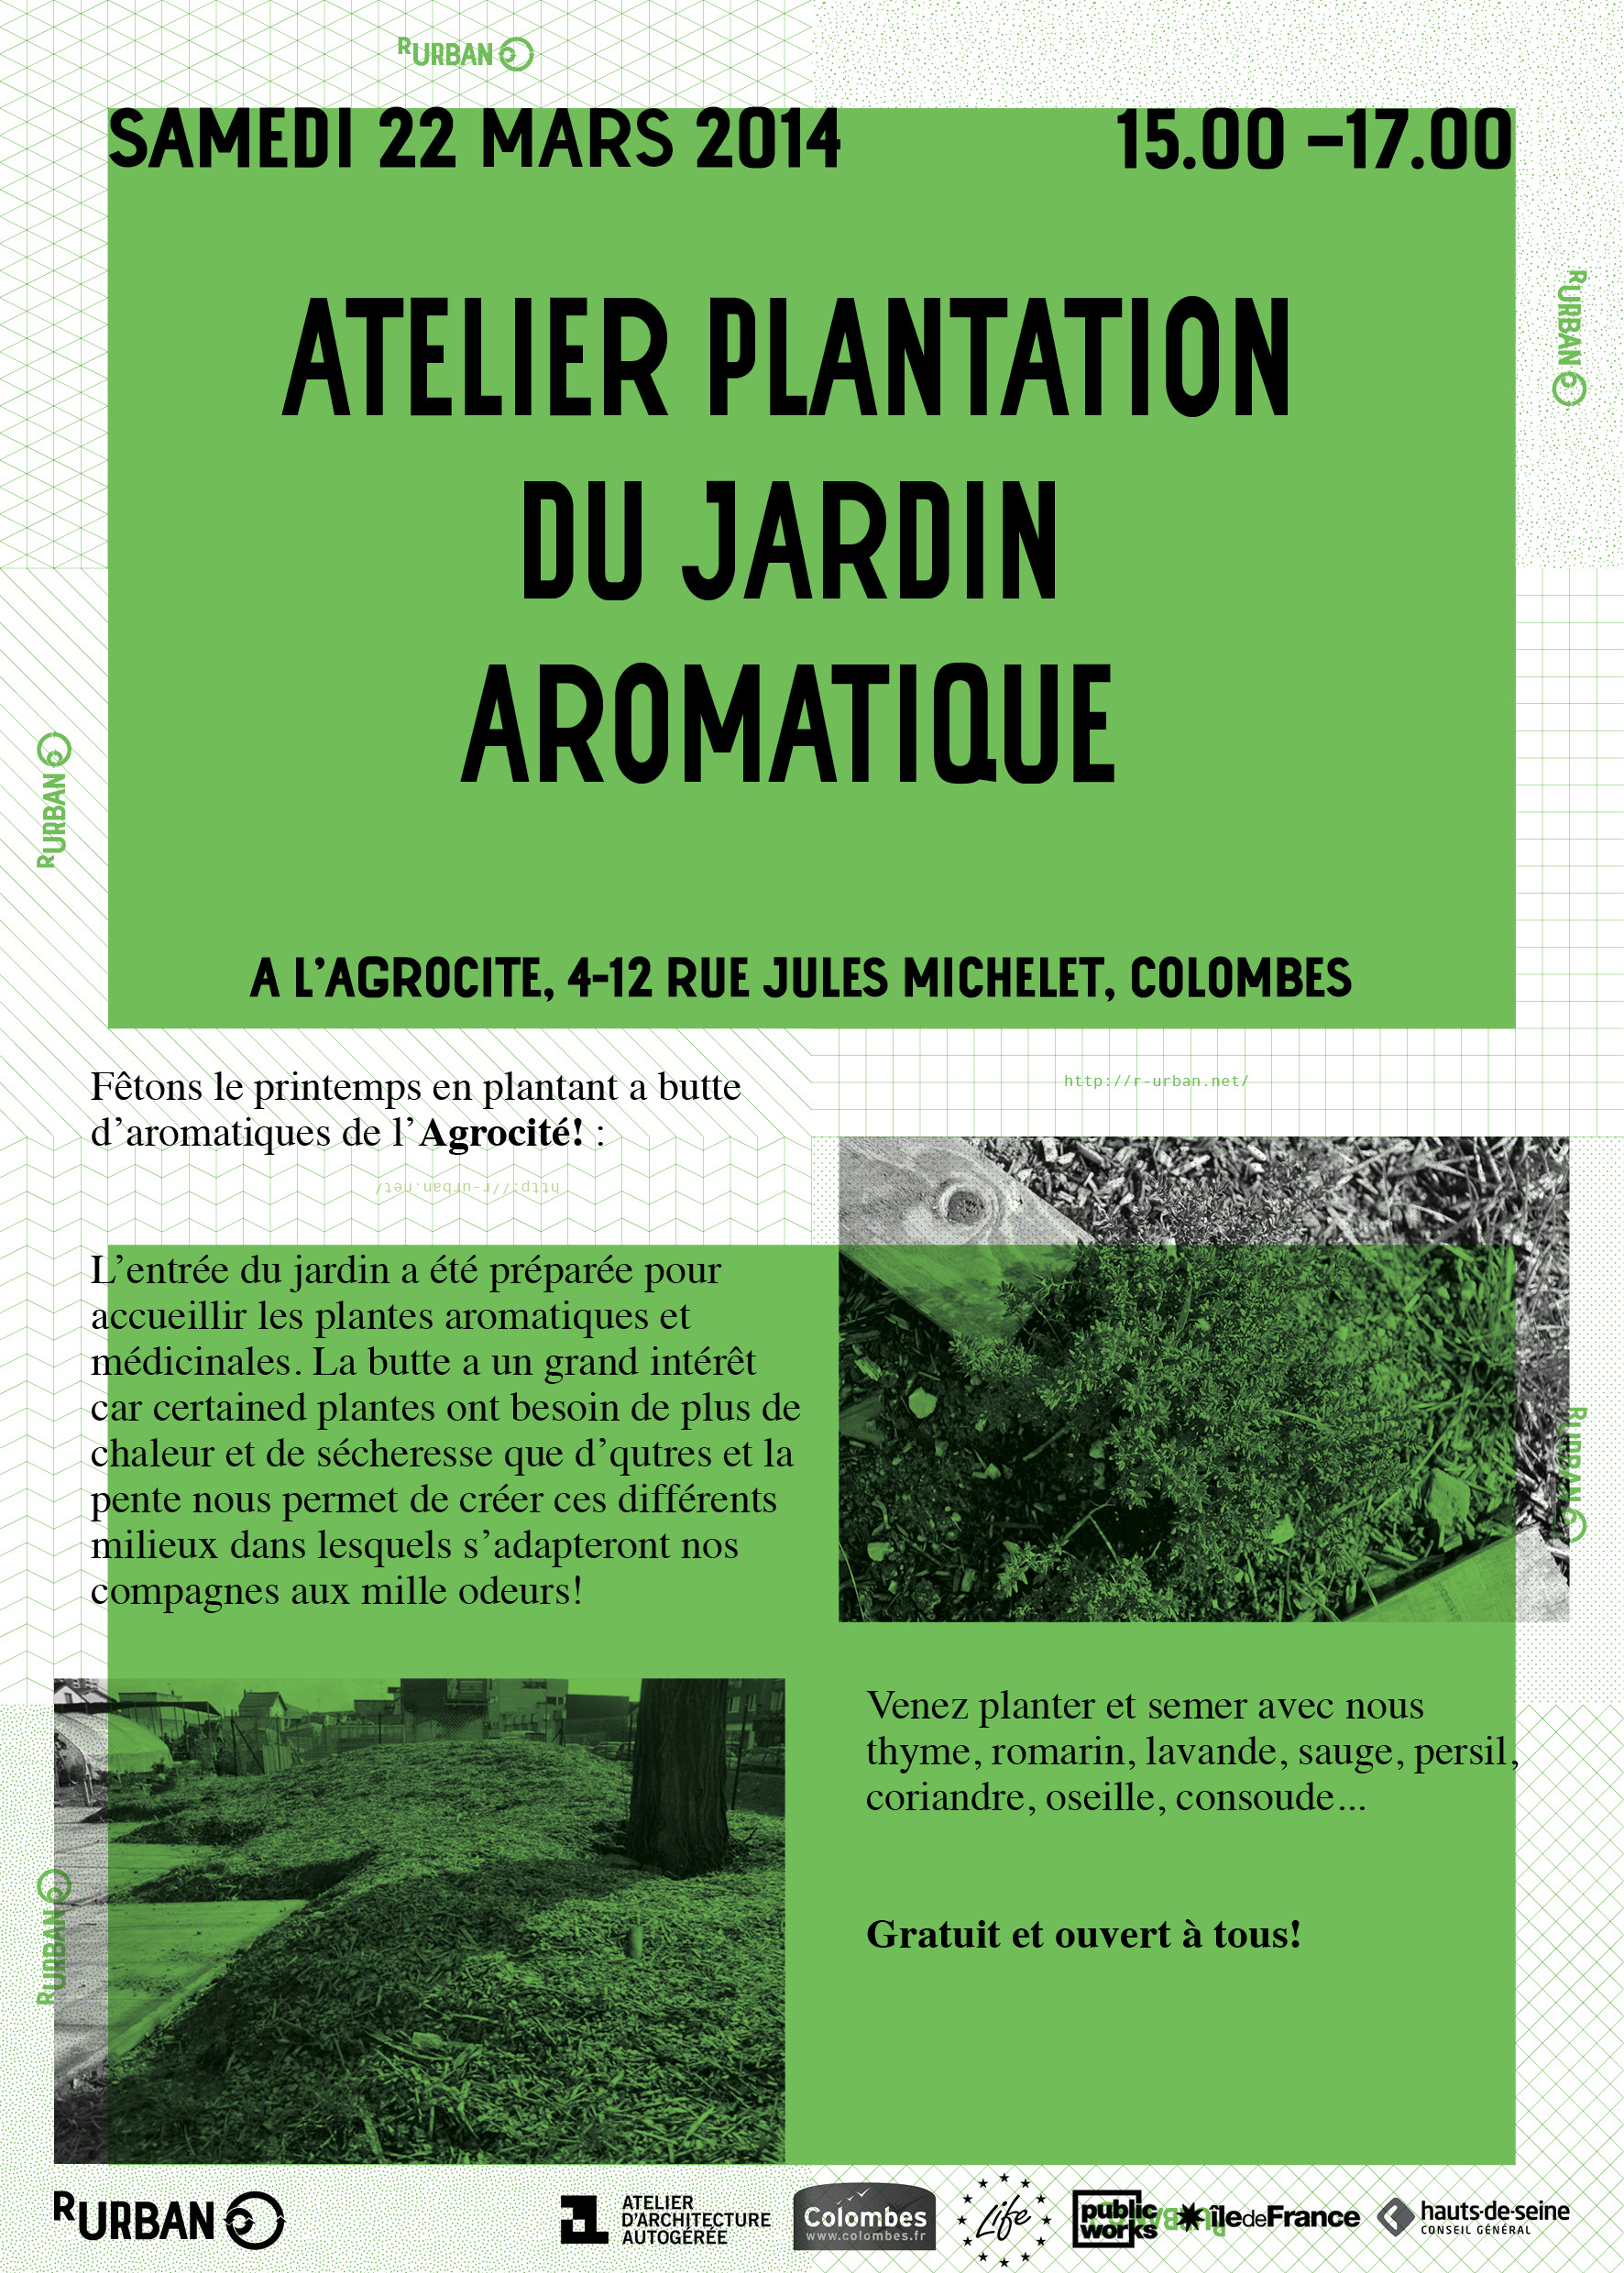 Atelier plantation du jardin aromatique r urban for Jardin plantation